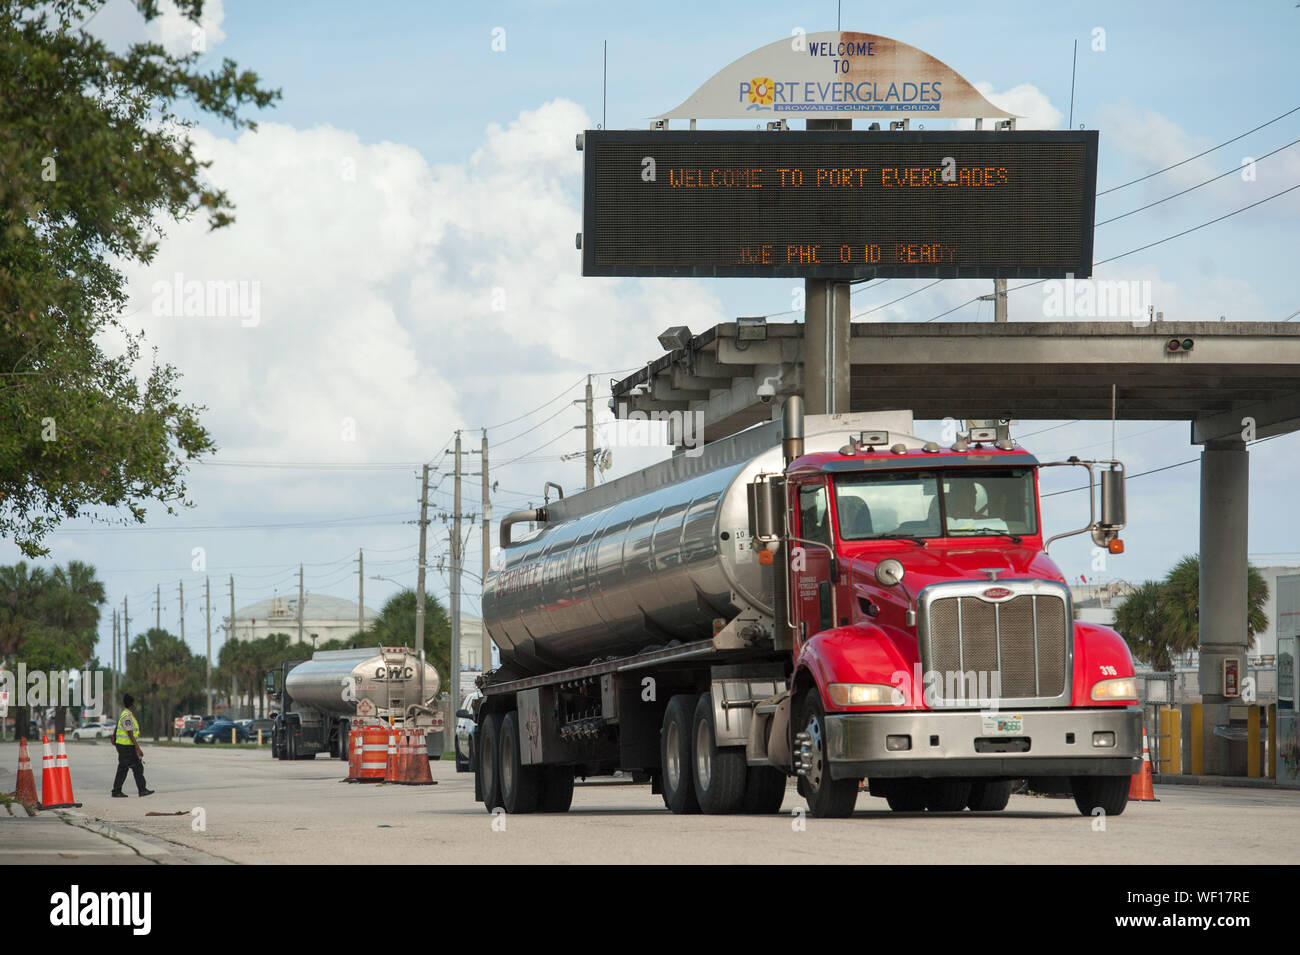 Fort Lauderdale, Florida, USA. 30th Aug, 2019. Fuel Tankers entering and leaving Port Everglades in Fort Lauderdale. Fuel demand in Florida is on the increase as residents stock up with gas in enticipation of Hurricane Dorian. Credit: Orit Ben-Ezzer/ZUMA Wire/Alamy Live News Stock Photo